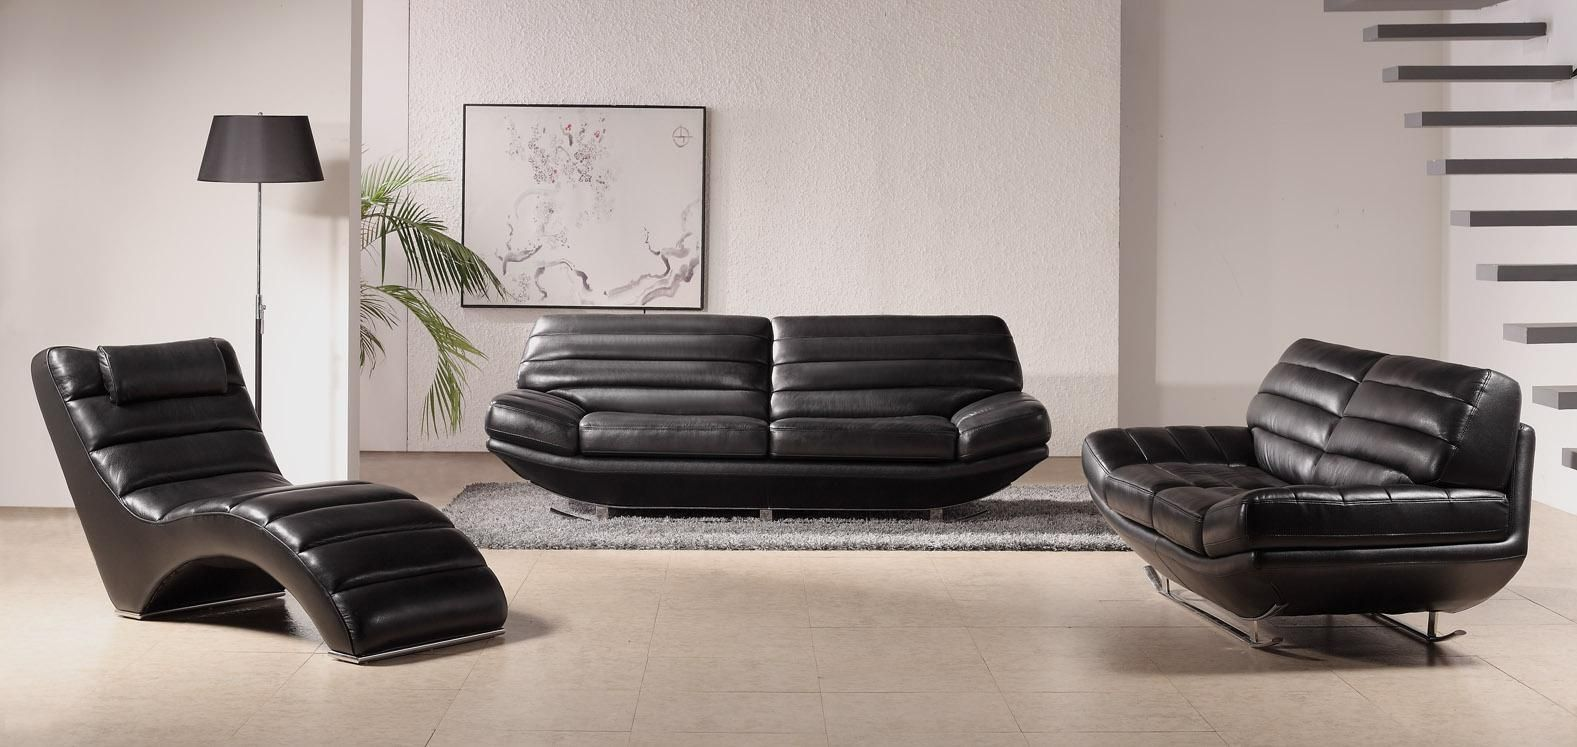 Black Modern Furniture contemporary living room ideas with sofa sets:mesmerizing interior